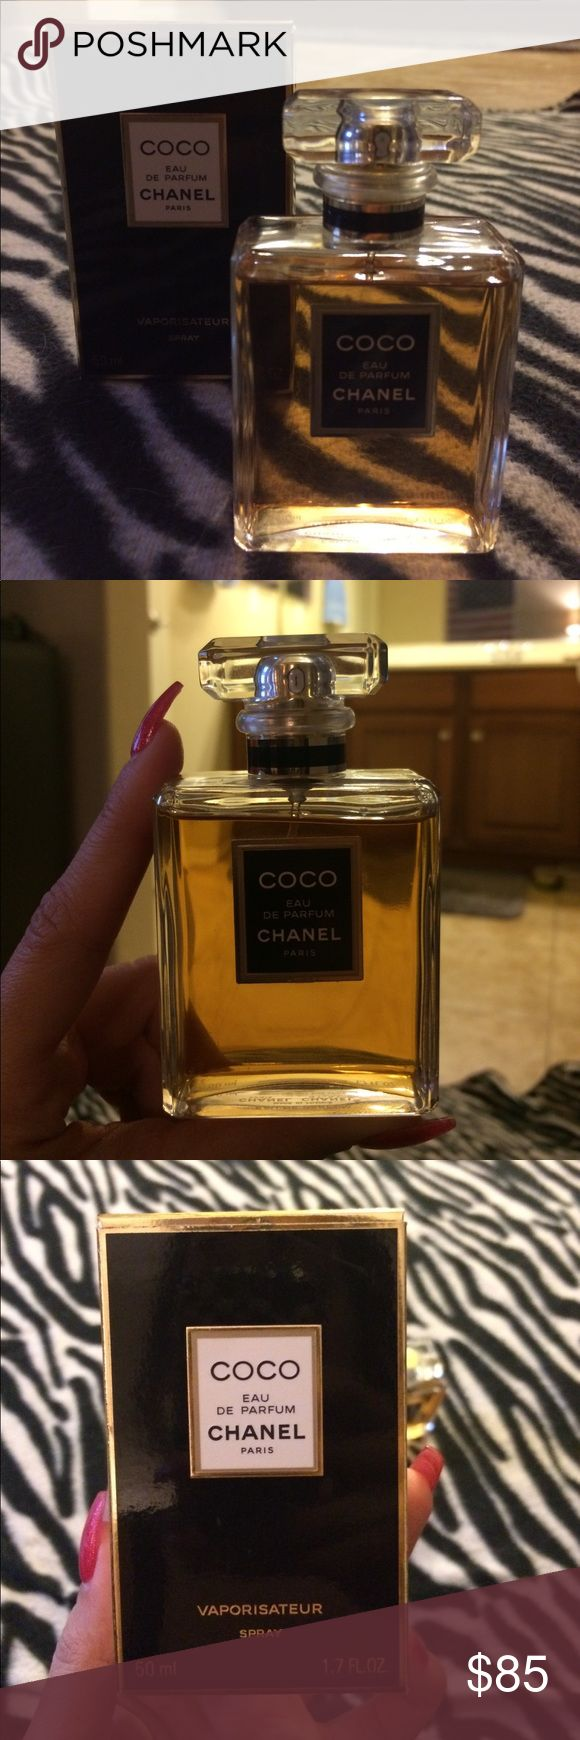 COCO CHANEL PARIS EAU DE PARFUM COCO CHANEL PARIS EAU DE PARFUM  Authentic - 95% Full (50ML - 1.7 FL.OZ.)  *No Returns* - Same day shipping. CHANEL Accessories